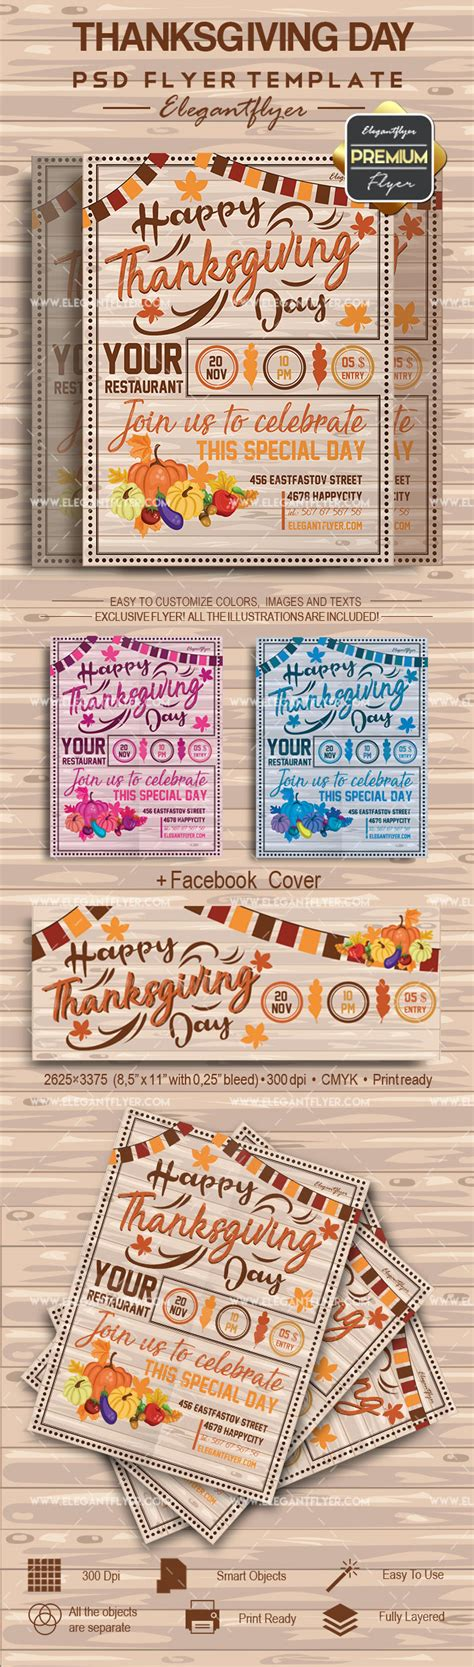 thanksgiving card template psd flyer for happy thanksgiving day by elegantflyer